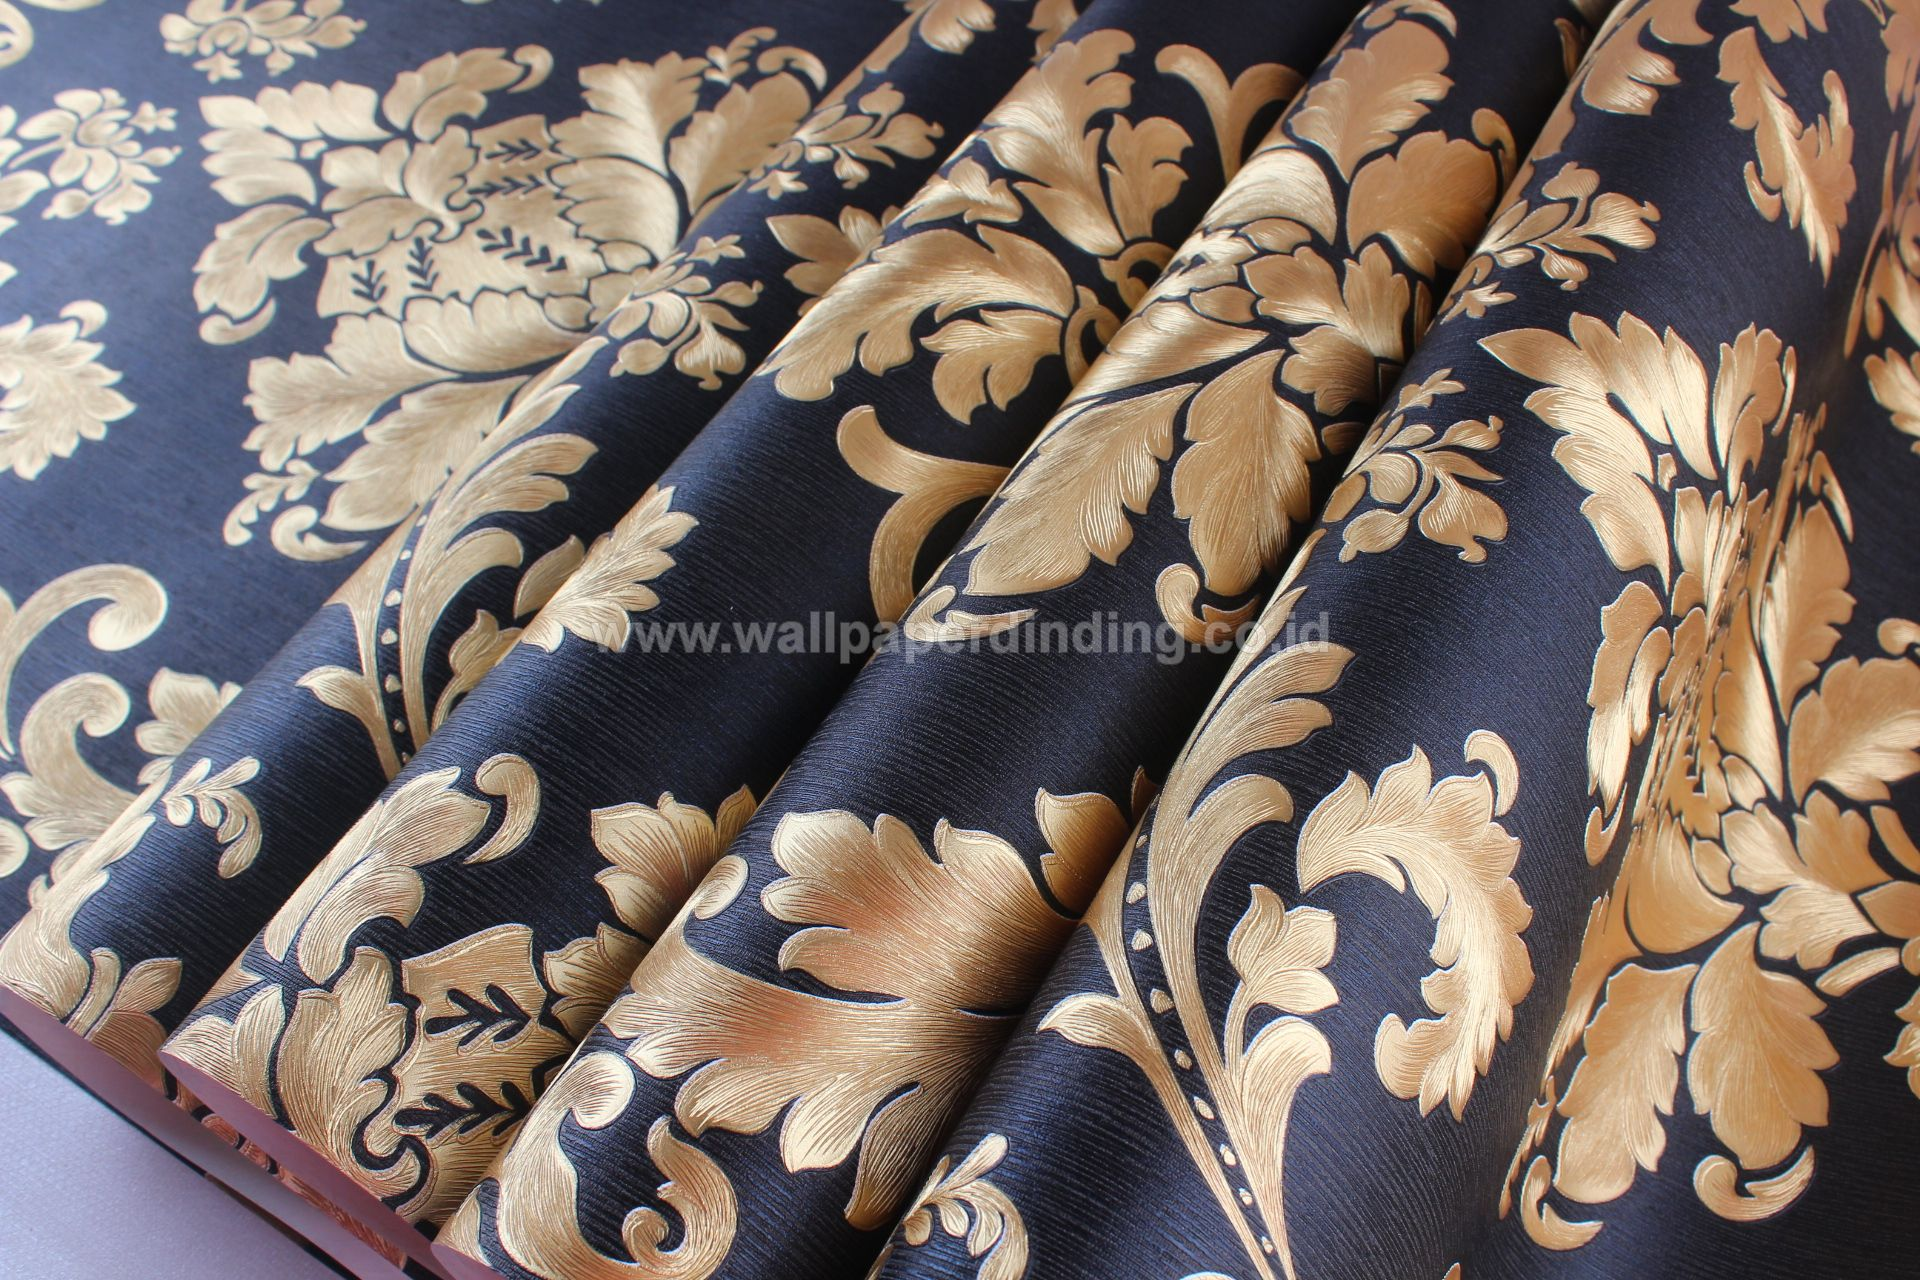 Wallpaper Dinding Batik Hitam Emas DI-7808 - Java Wallpaper